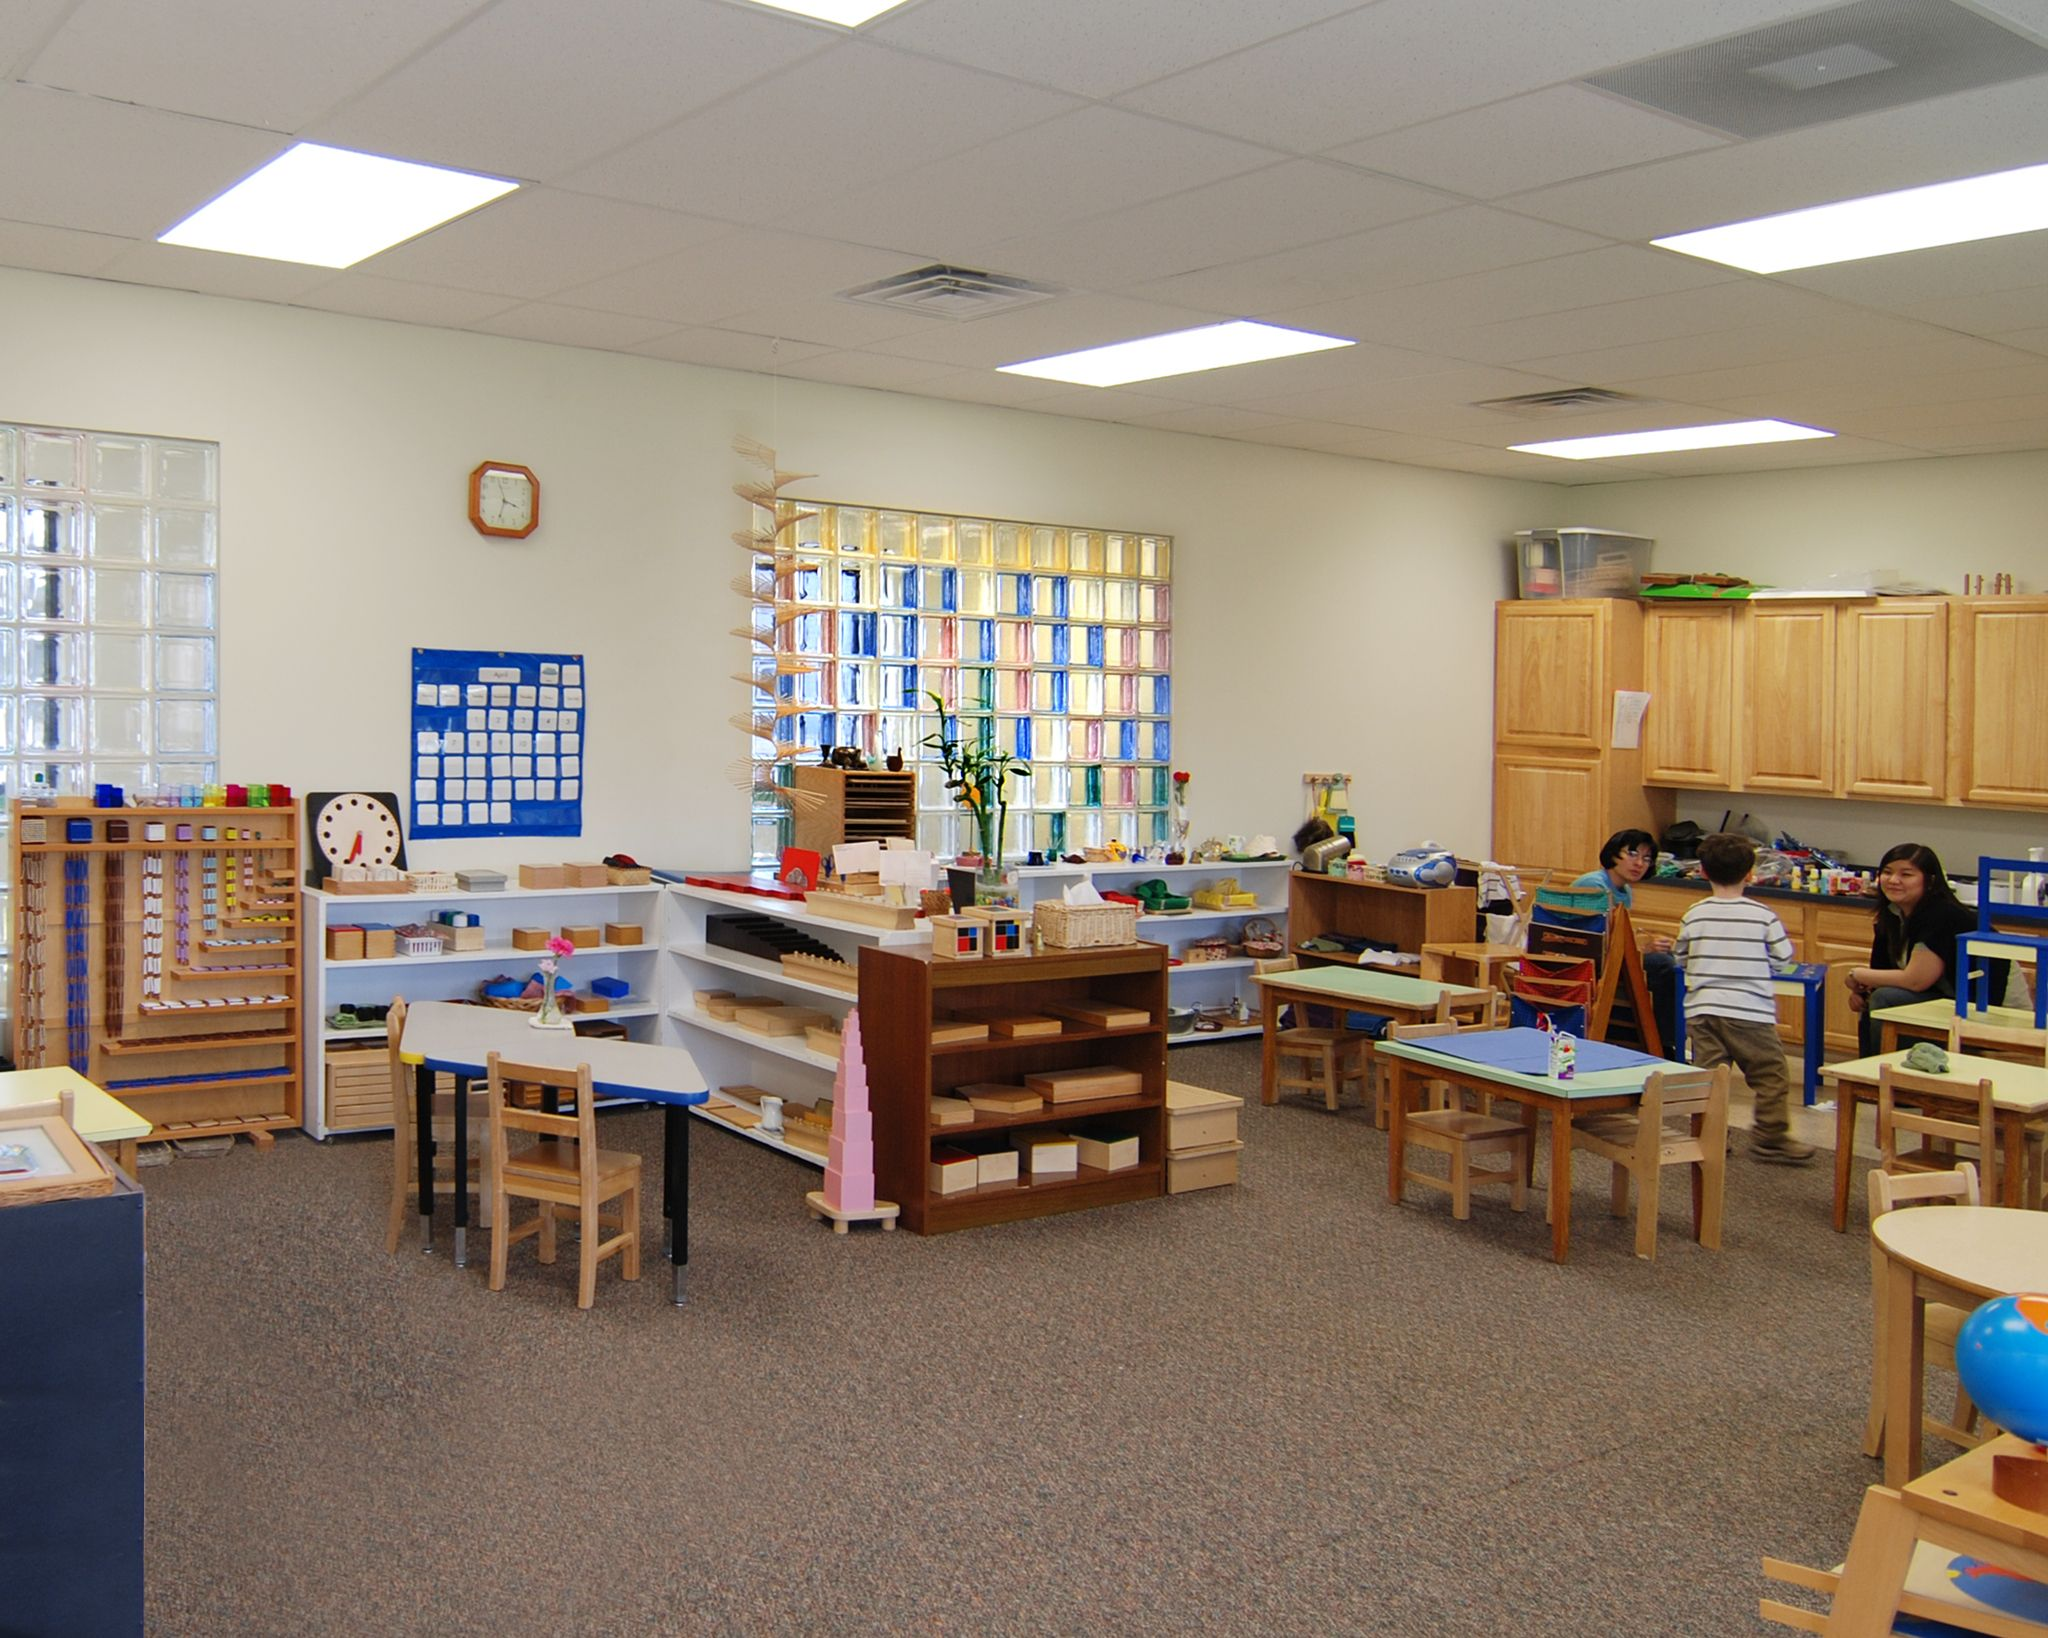 Classroom Ideas Primary ~ Classroom layout ideas primary school creative